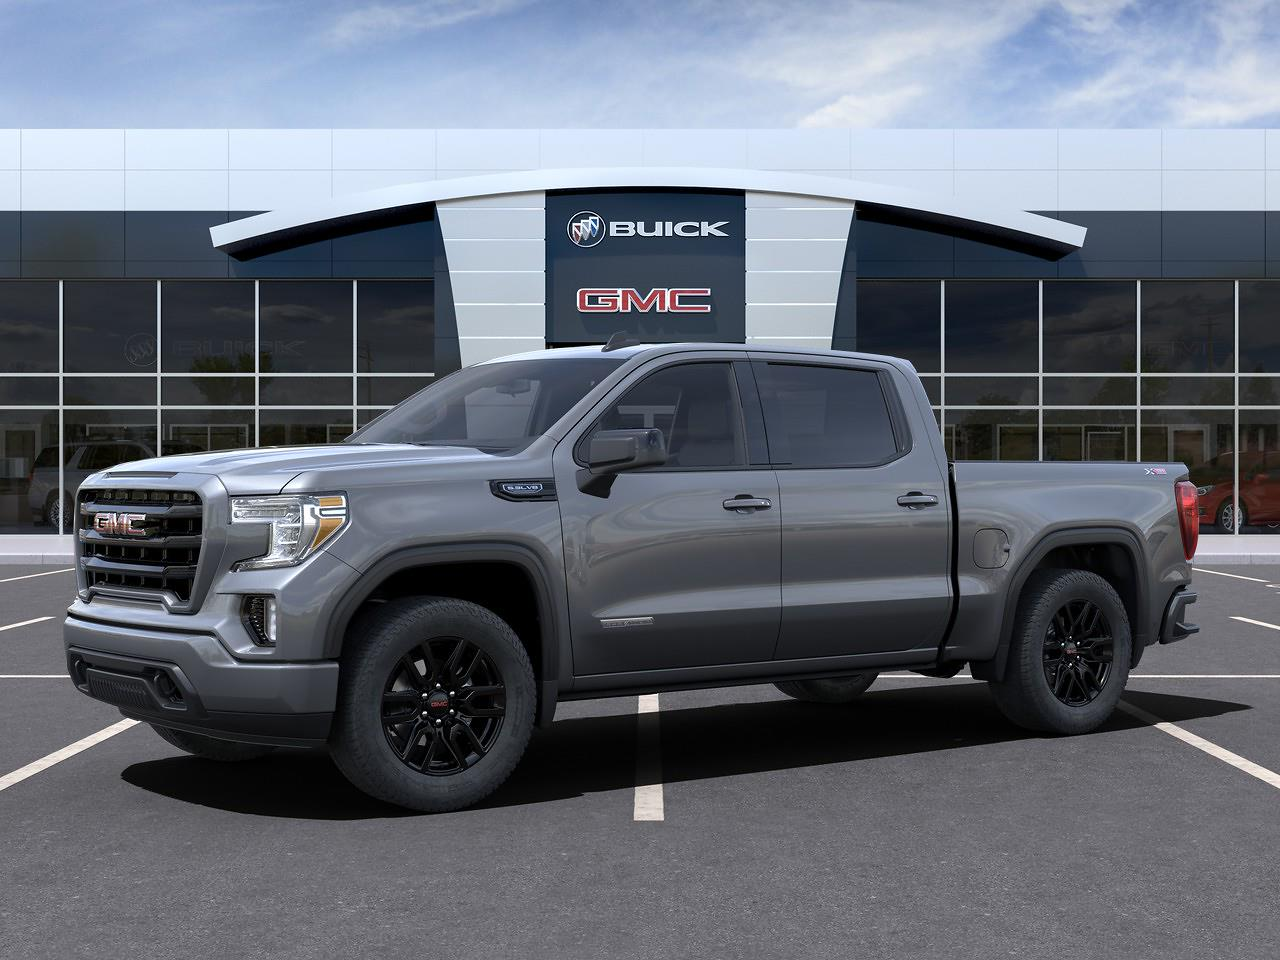 2021 GMC Sierra 1500 Crew Cab 4x4, Pickup #23590 - photo 3